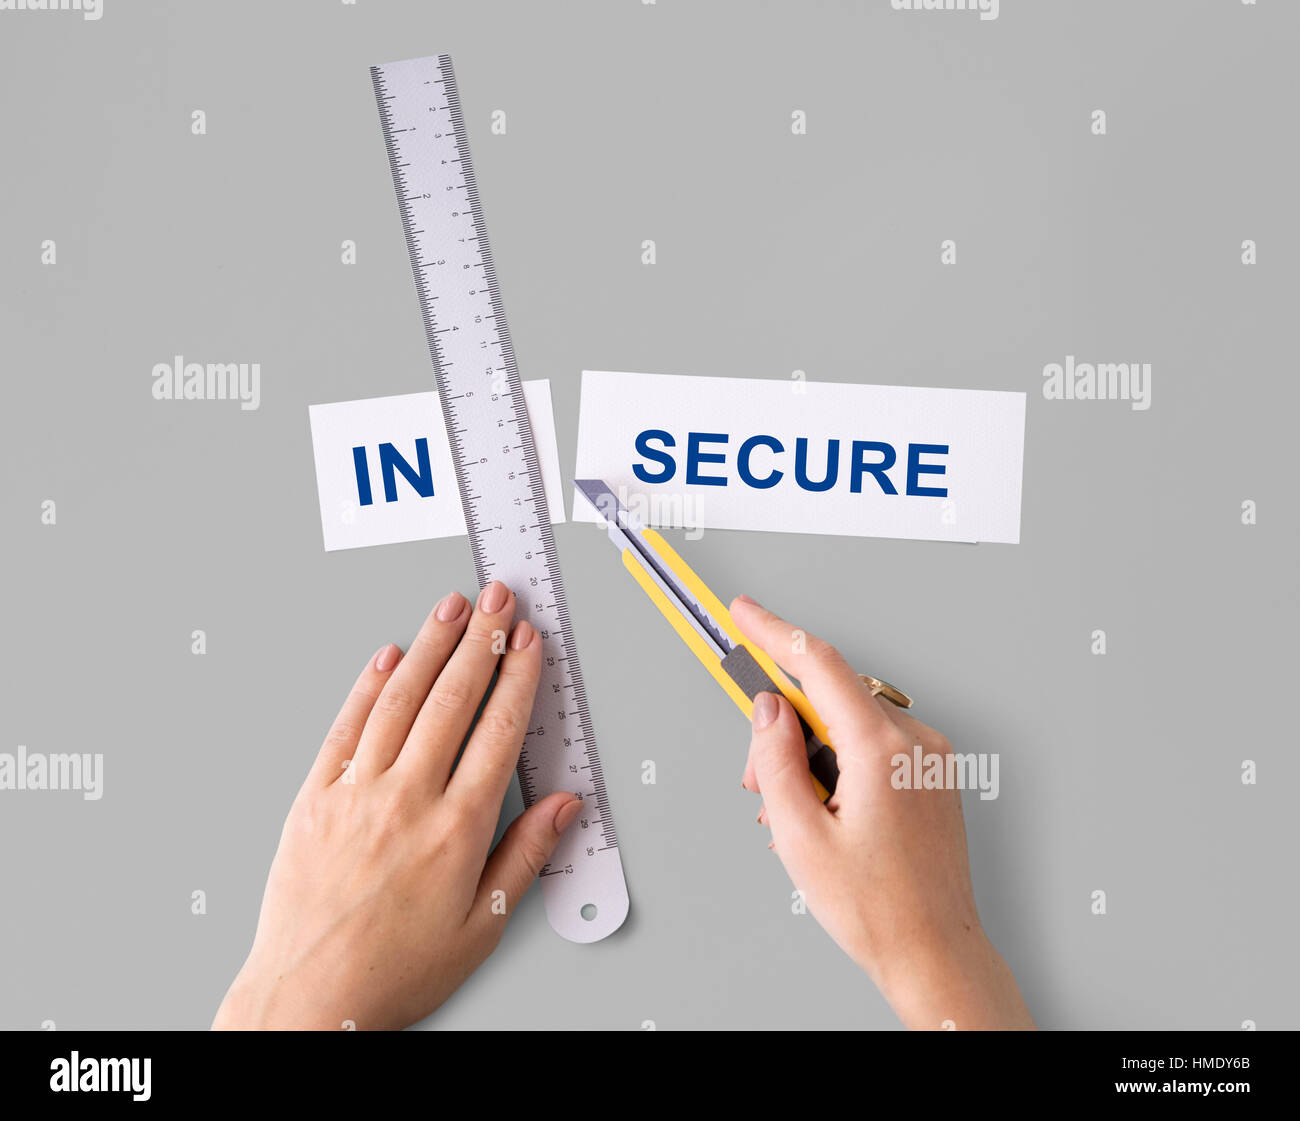 Insecure Unsafe Hands Cut Split Word Concept - Stock Image